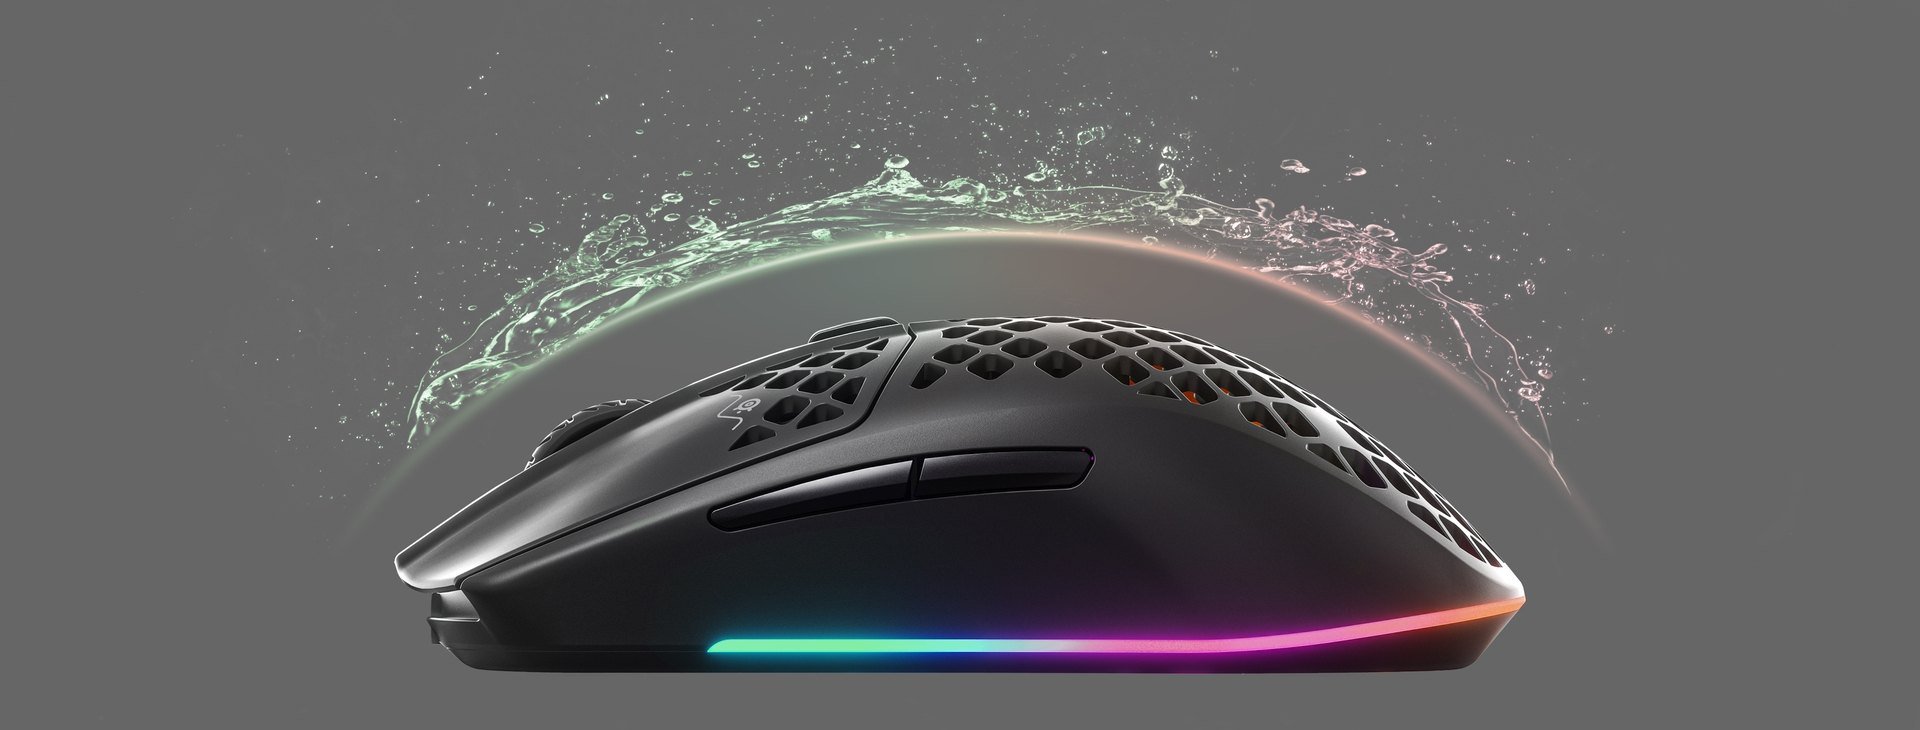 An Aerox 3 Wireless mouse with an invisible shield protecting it from incoming water splashing, to convey the waterproofing features